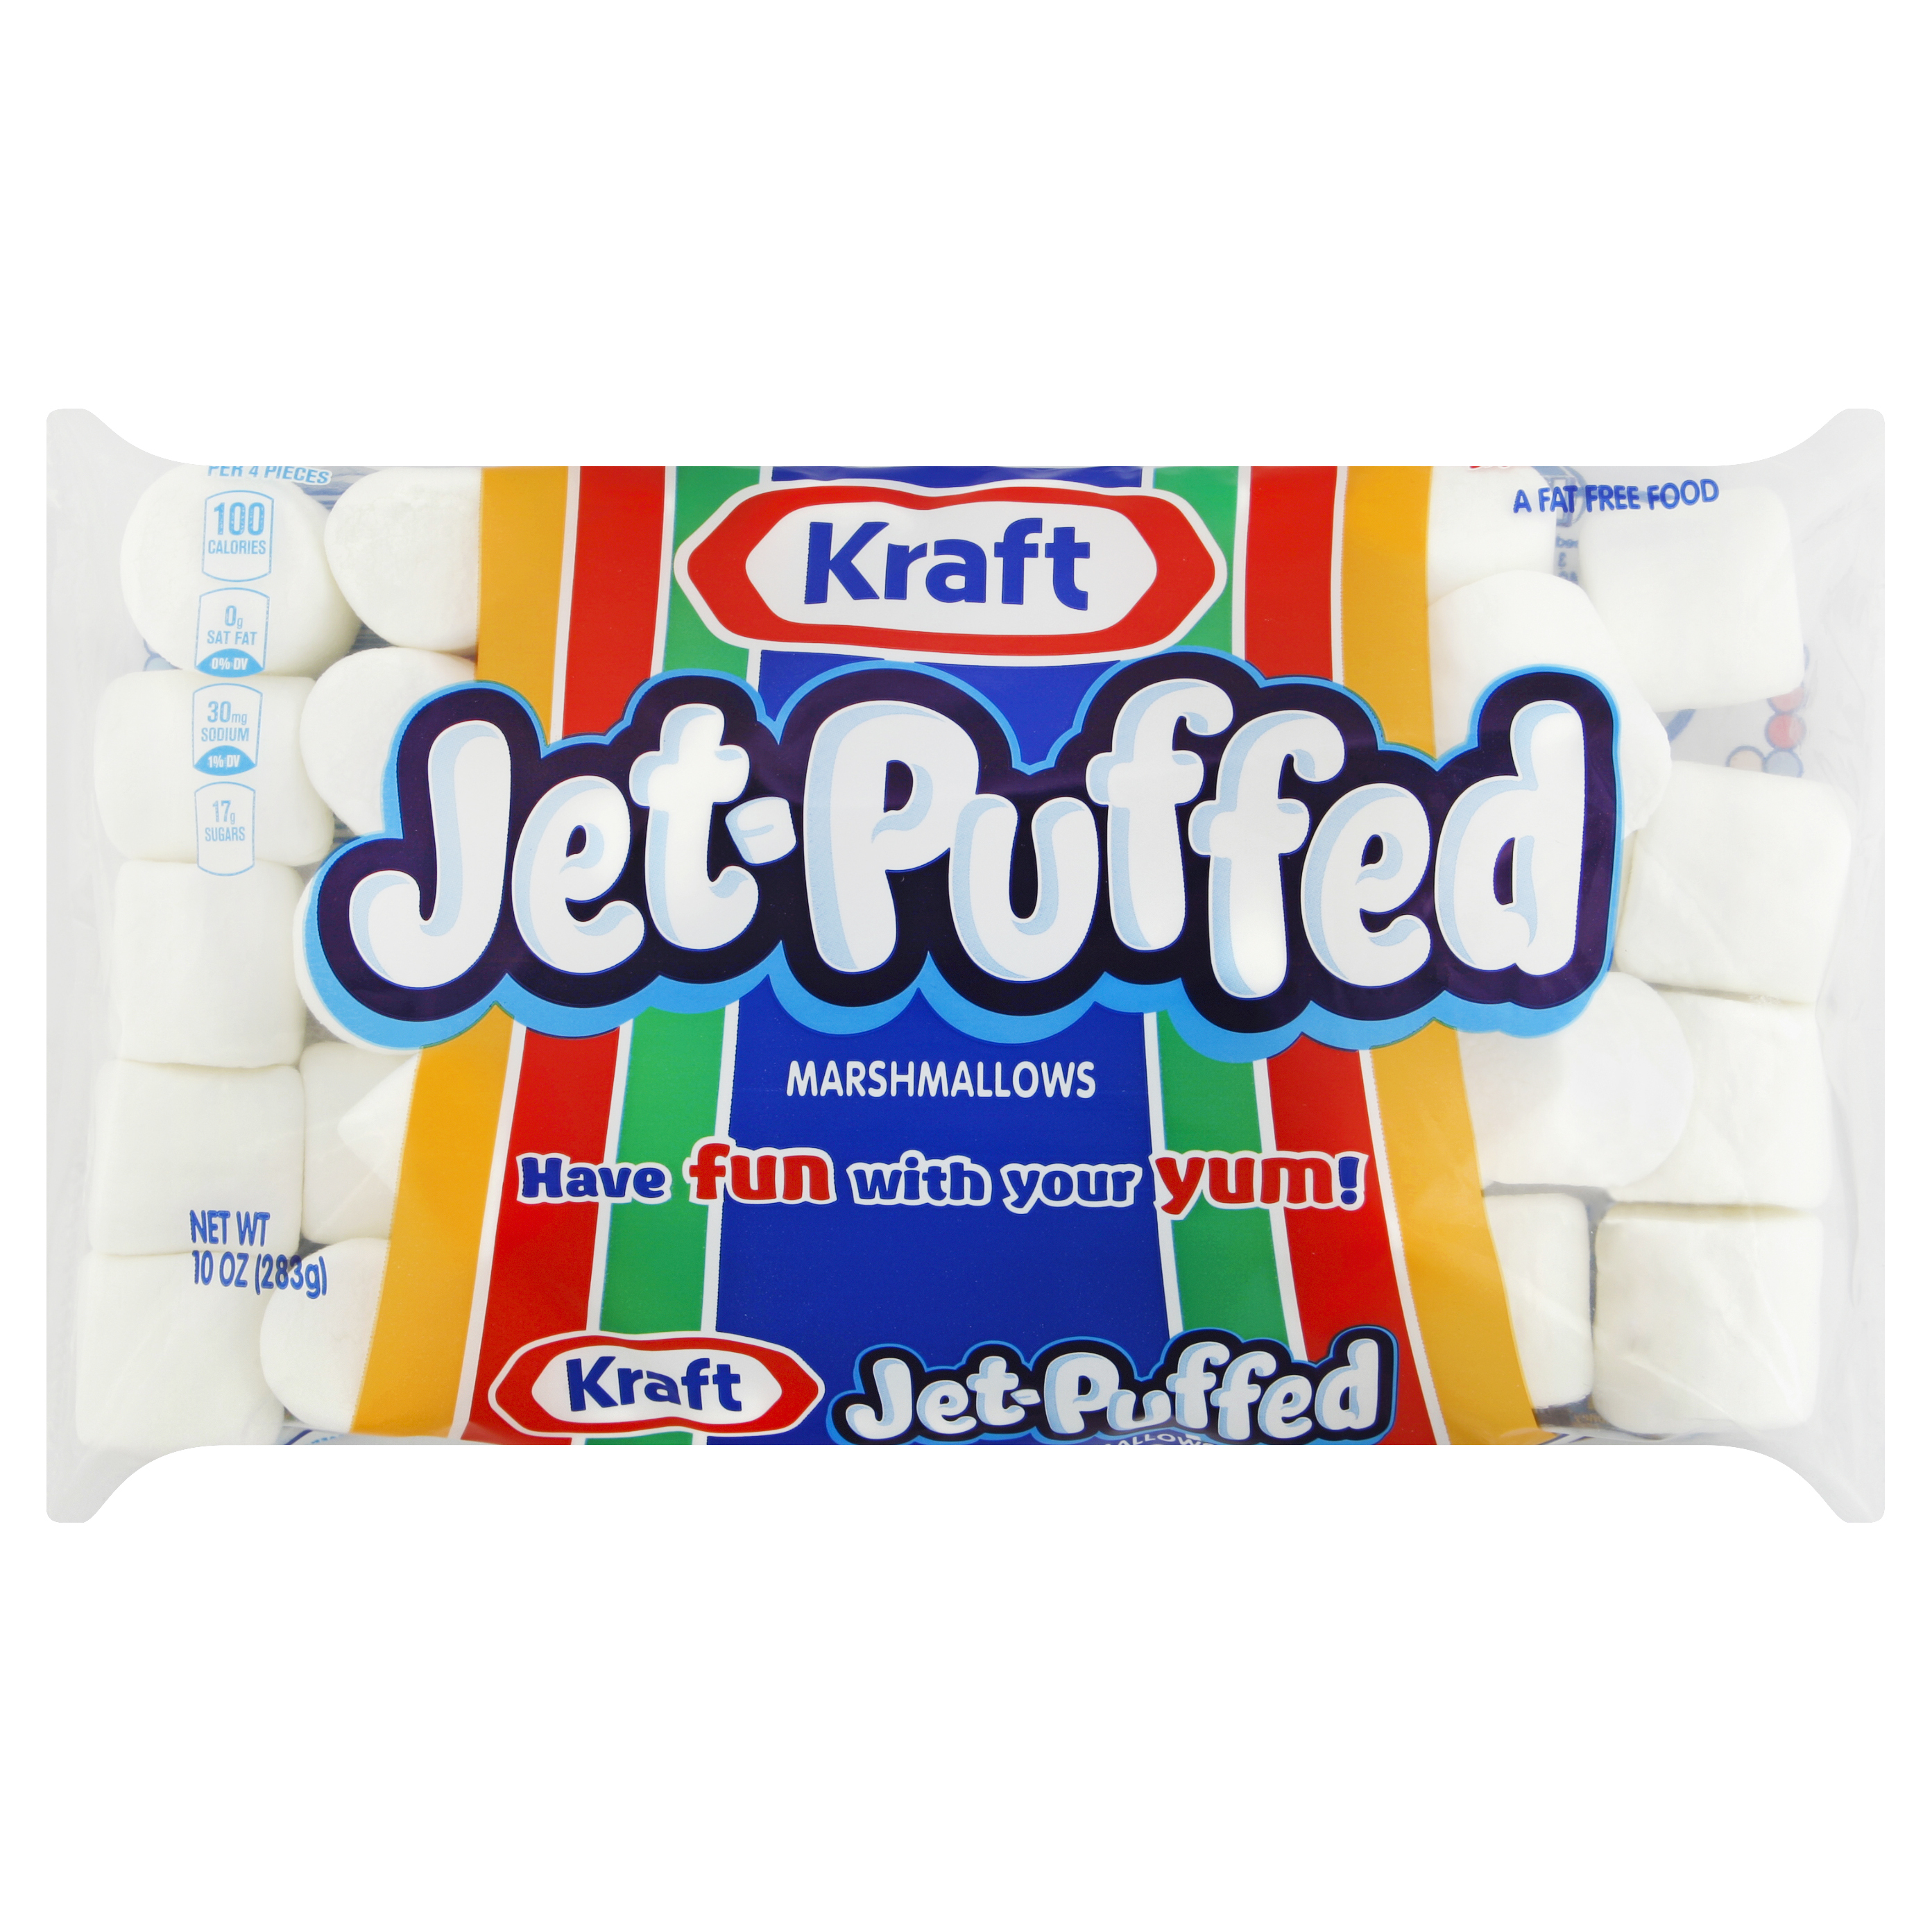 Jet-Puffed Regular Marshmallows, 10 oz. image